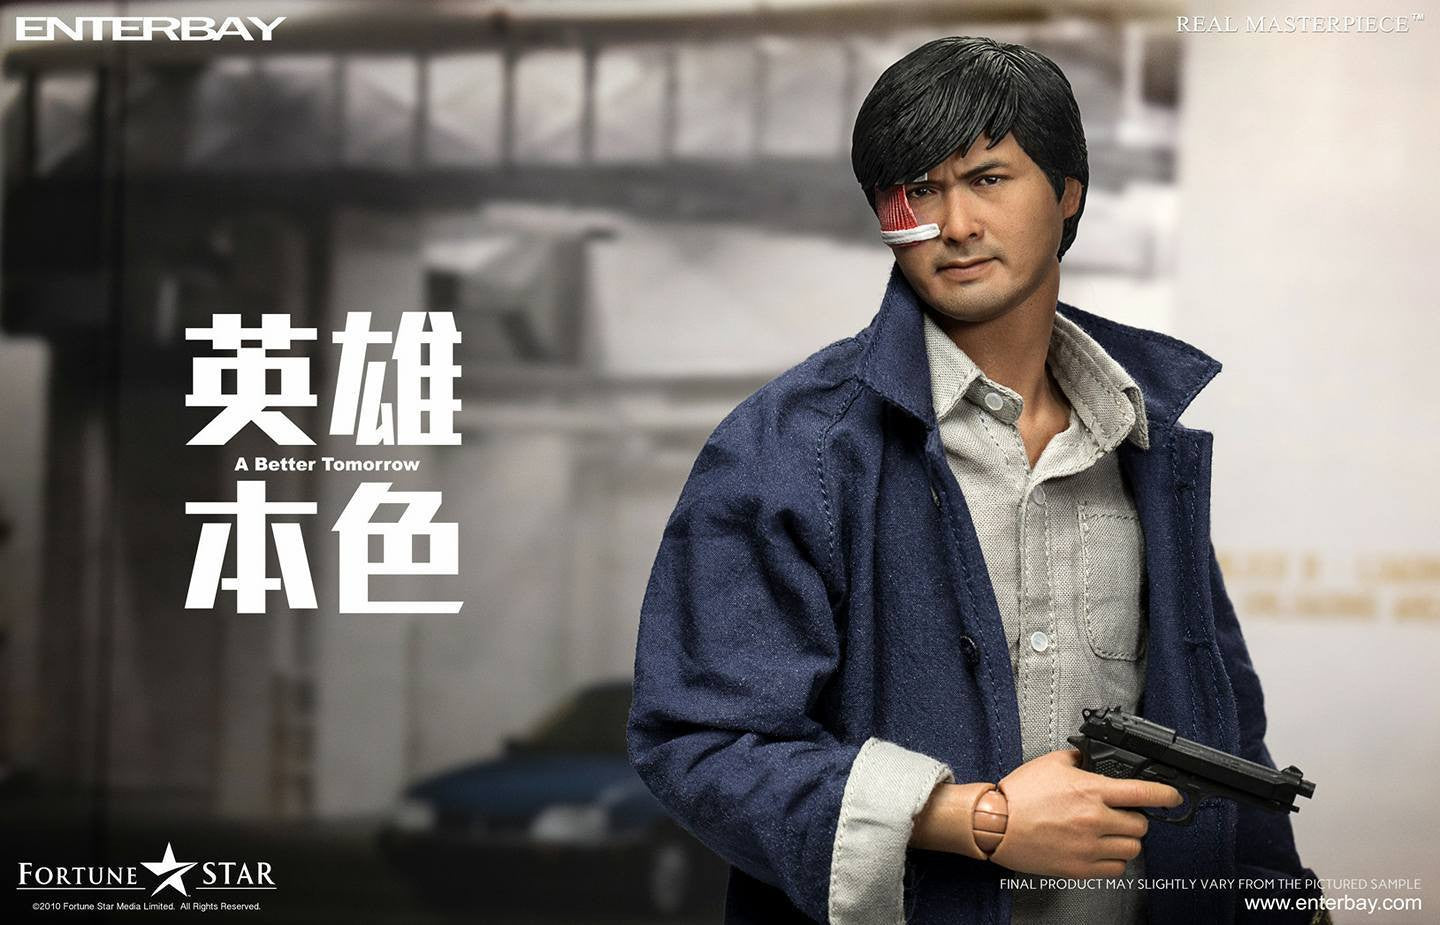 Enterbay - 1/6 A Better Tomorrow 英雄本色 - Mark哥 (Chow Yun Fatt/周润发) - Marvelous Toys - 2